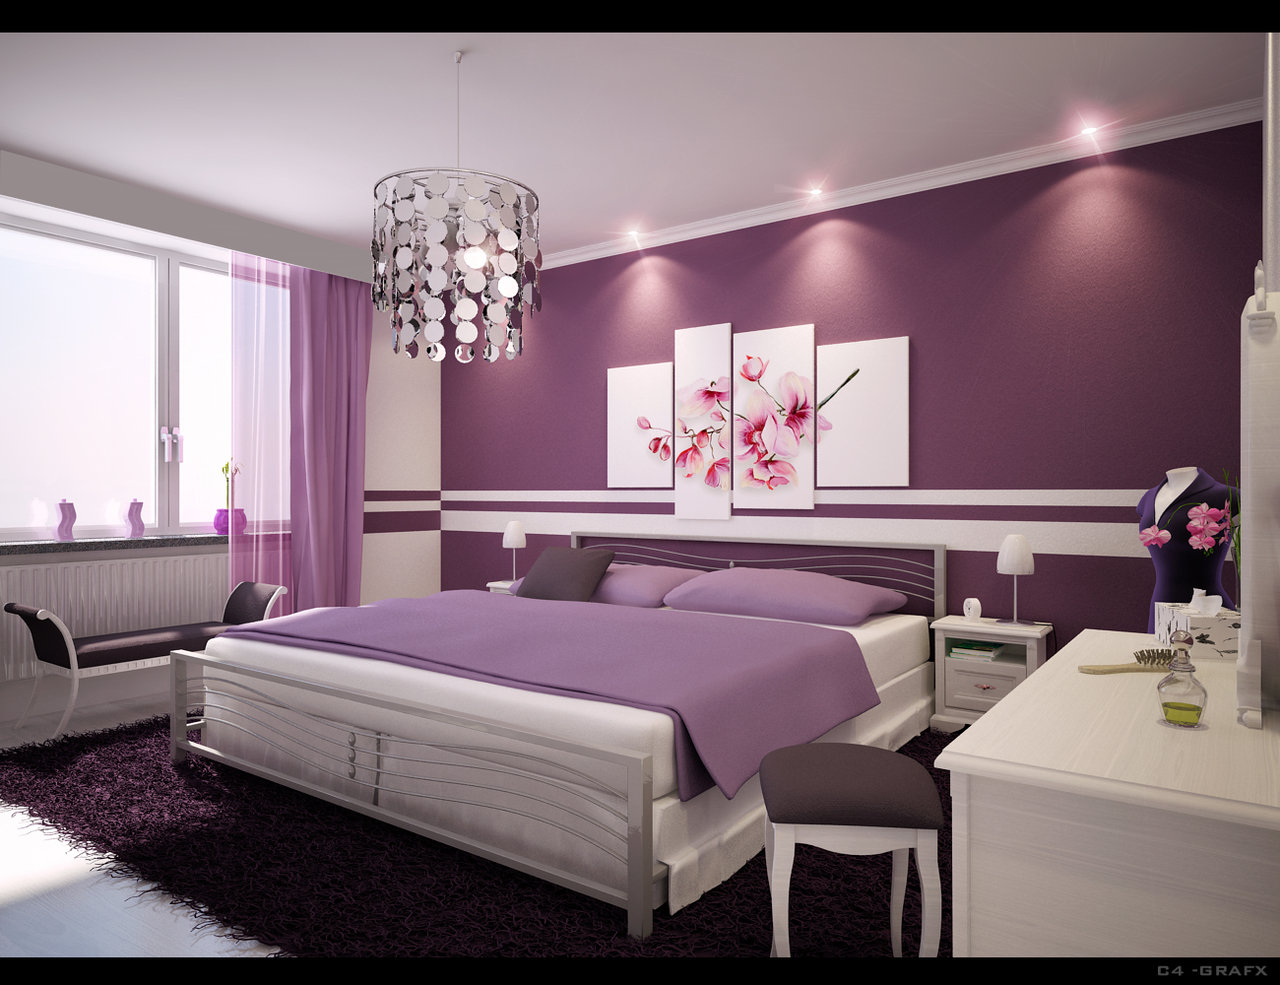 Interior Bed Room Design New Dream House Experience 2016 Bedroom Interior Design Ideas